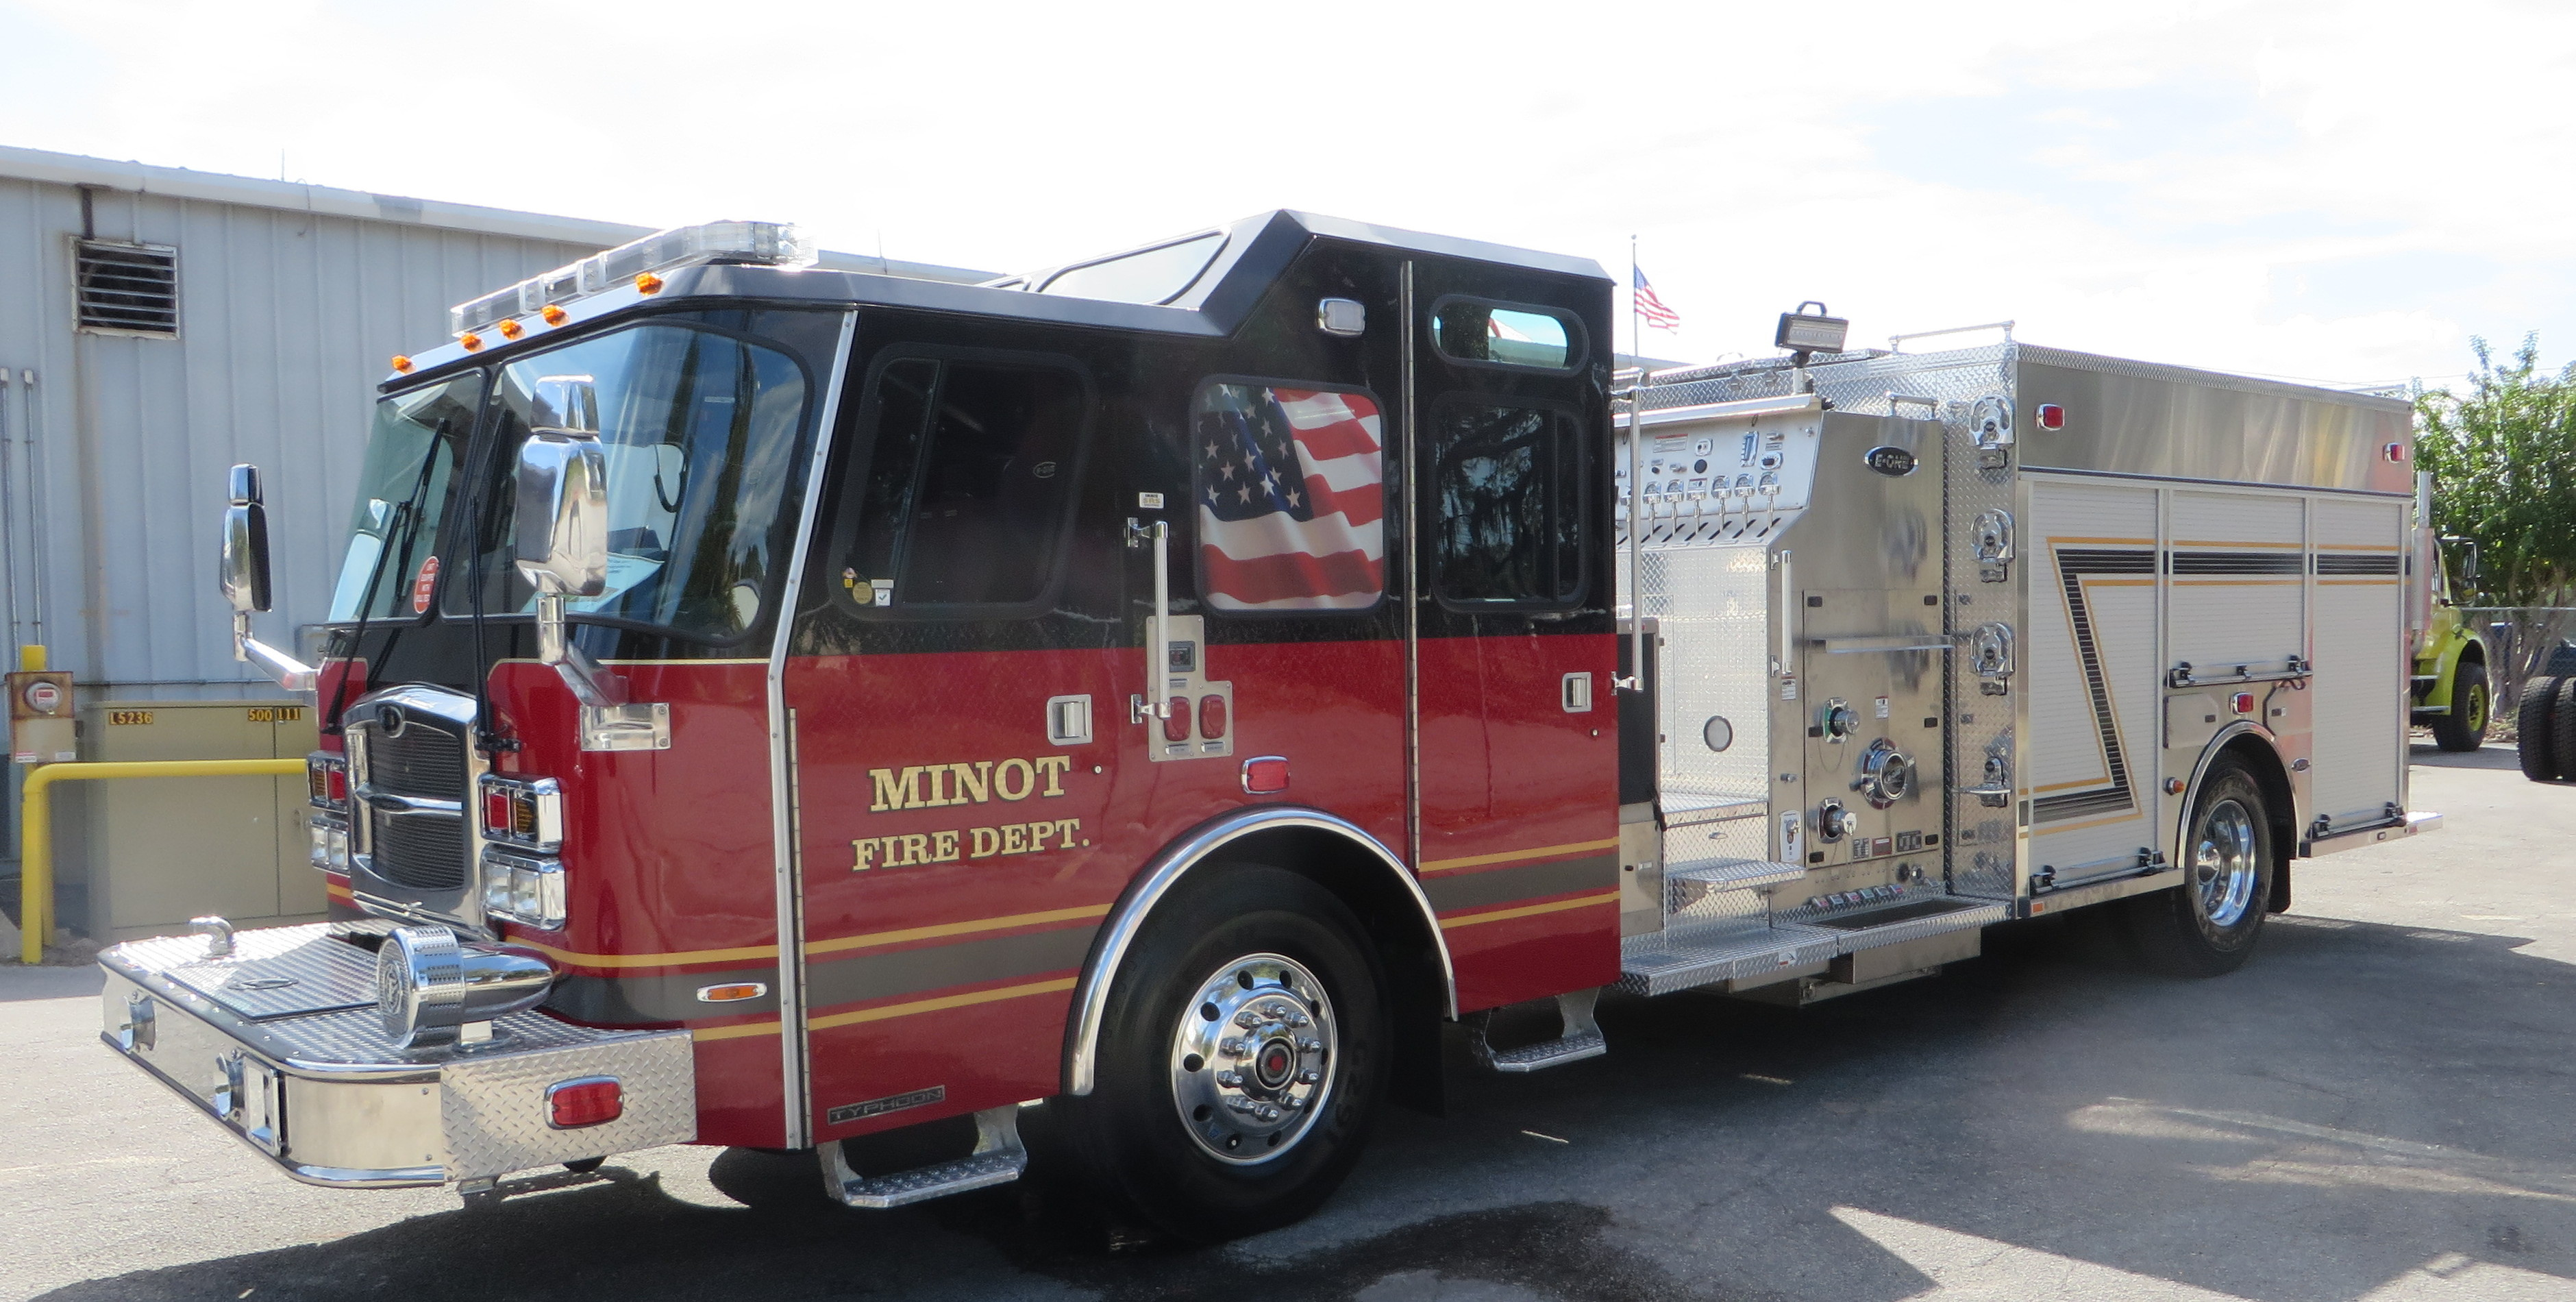 Minot Fire Department's New E-ONE Stainless Steel Pumper